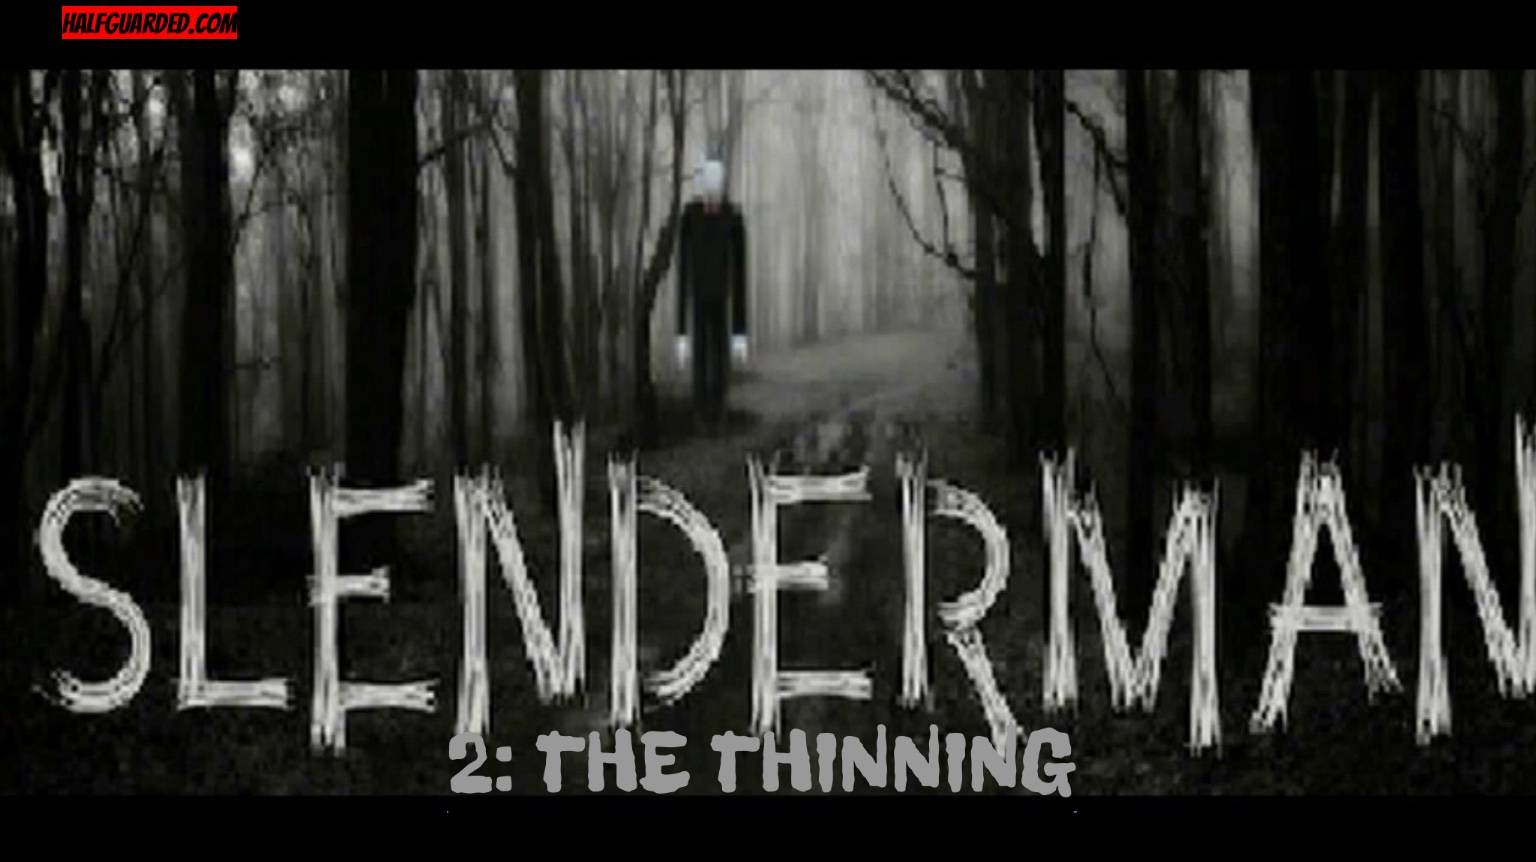 Slender Man 2 (2020) RUMORS, Plot, Cast, and Release Date News - WILL THERE BE Slender Man 2?!